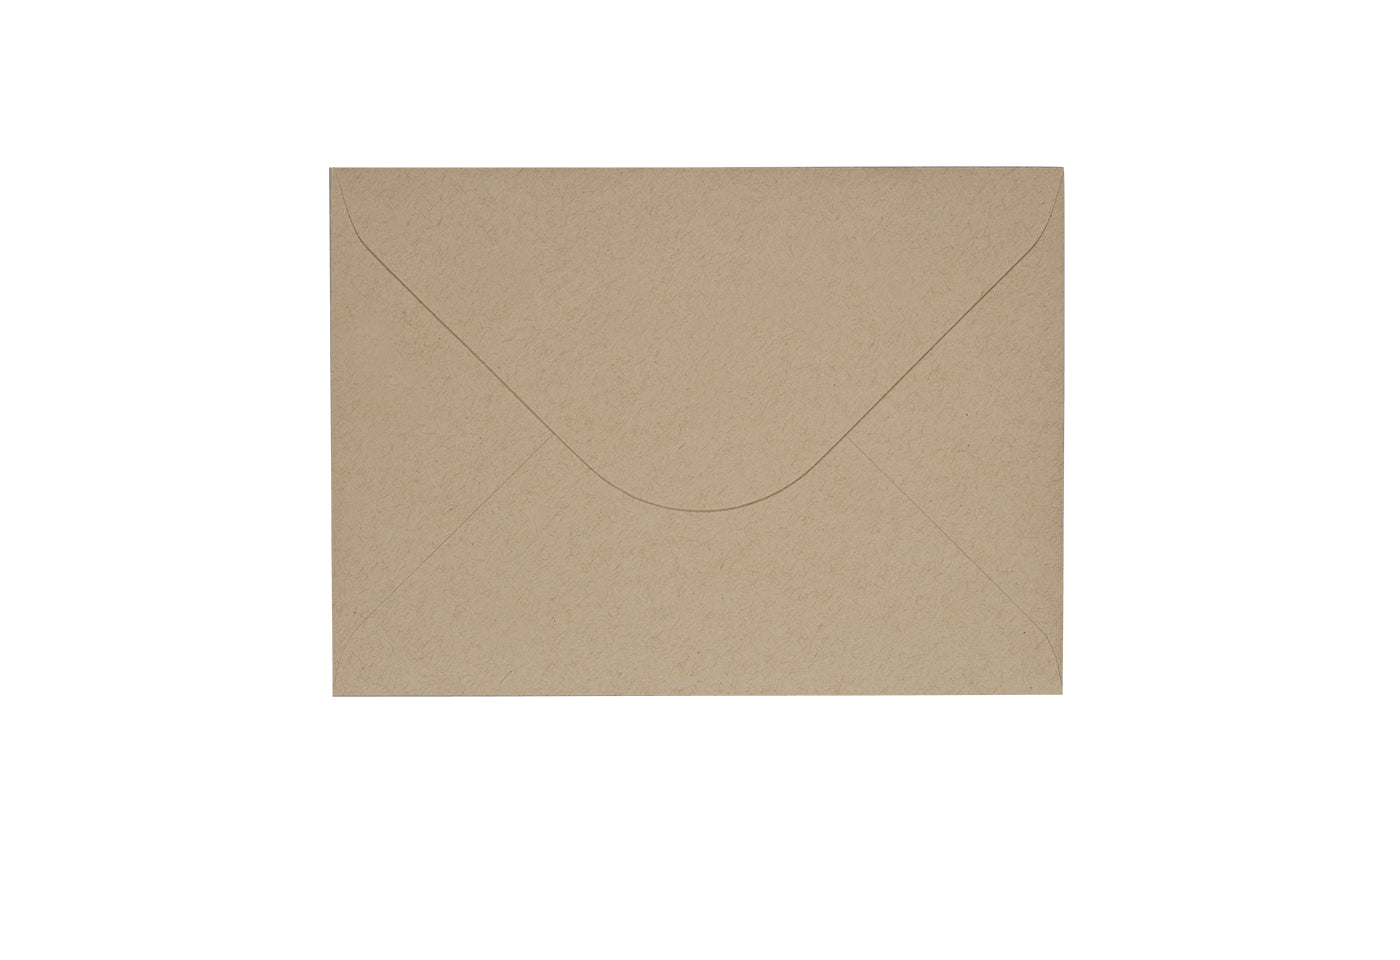 Medium MOO Envelopes - Pack of 25